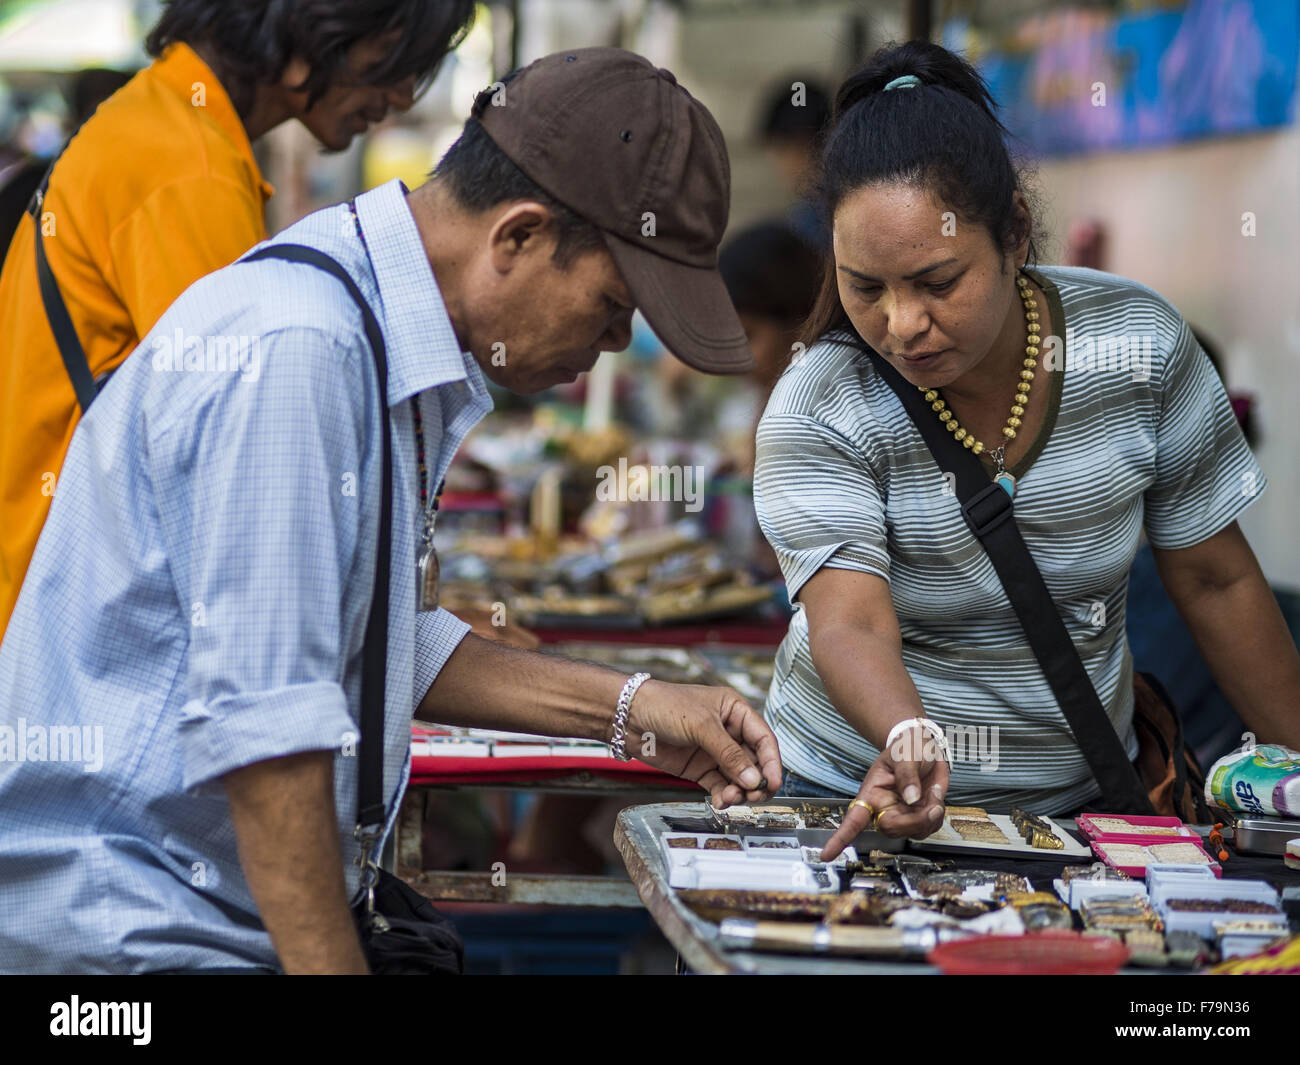 Bangkok, Bangkok, Thailand. 27th Nov, 2015. An amulet vendor points out an amulet to a potential customer at her - Stock Image